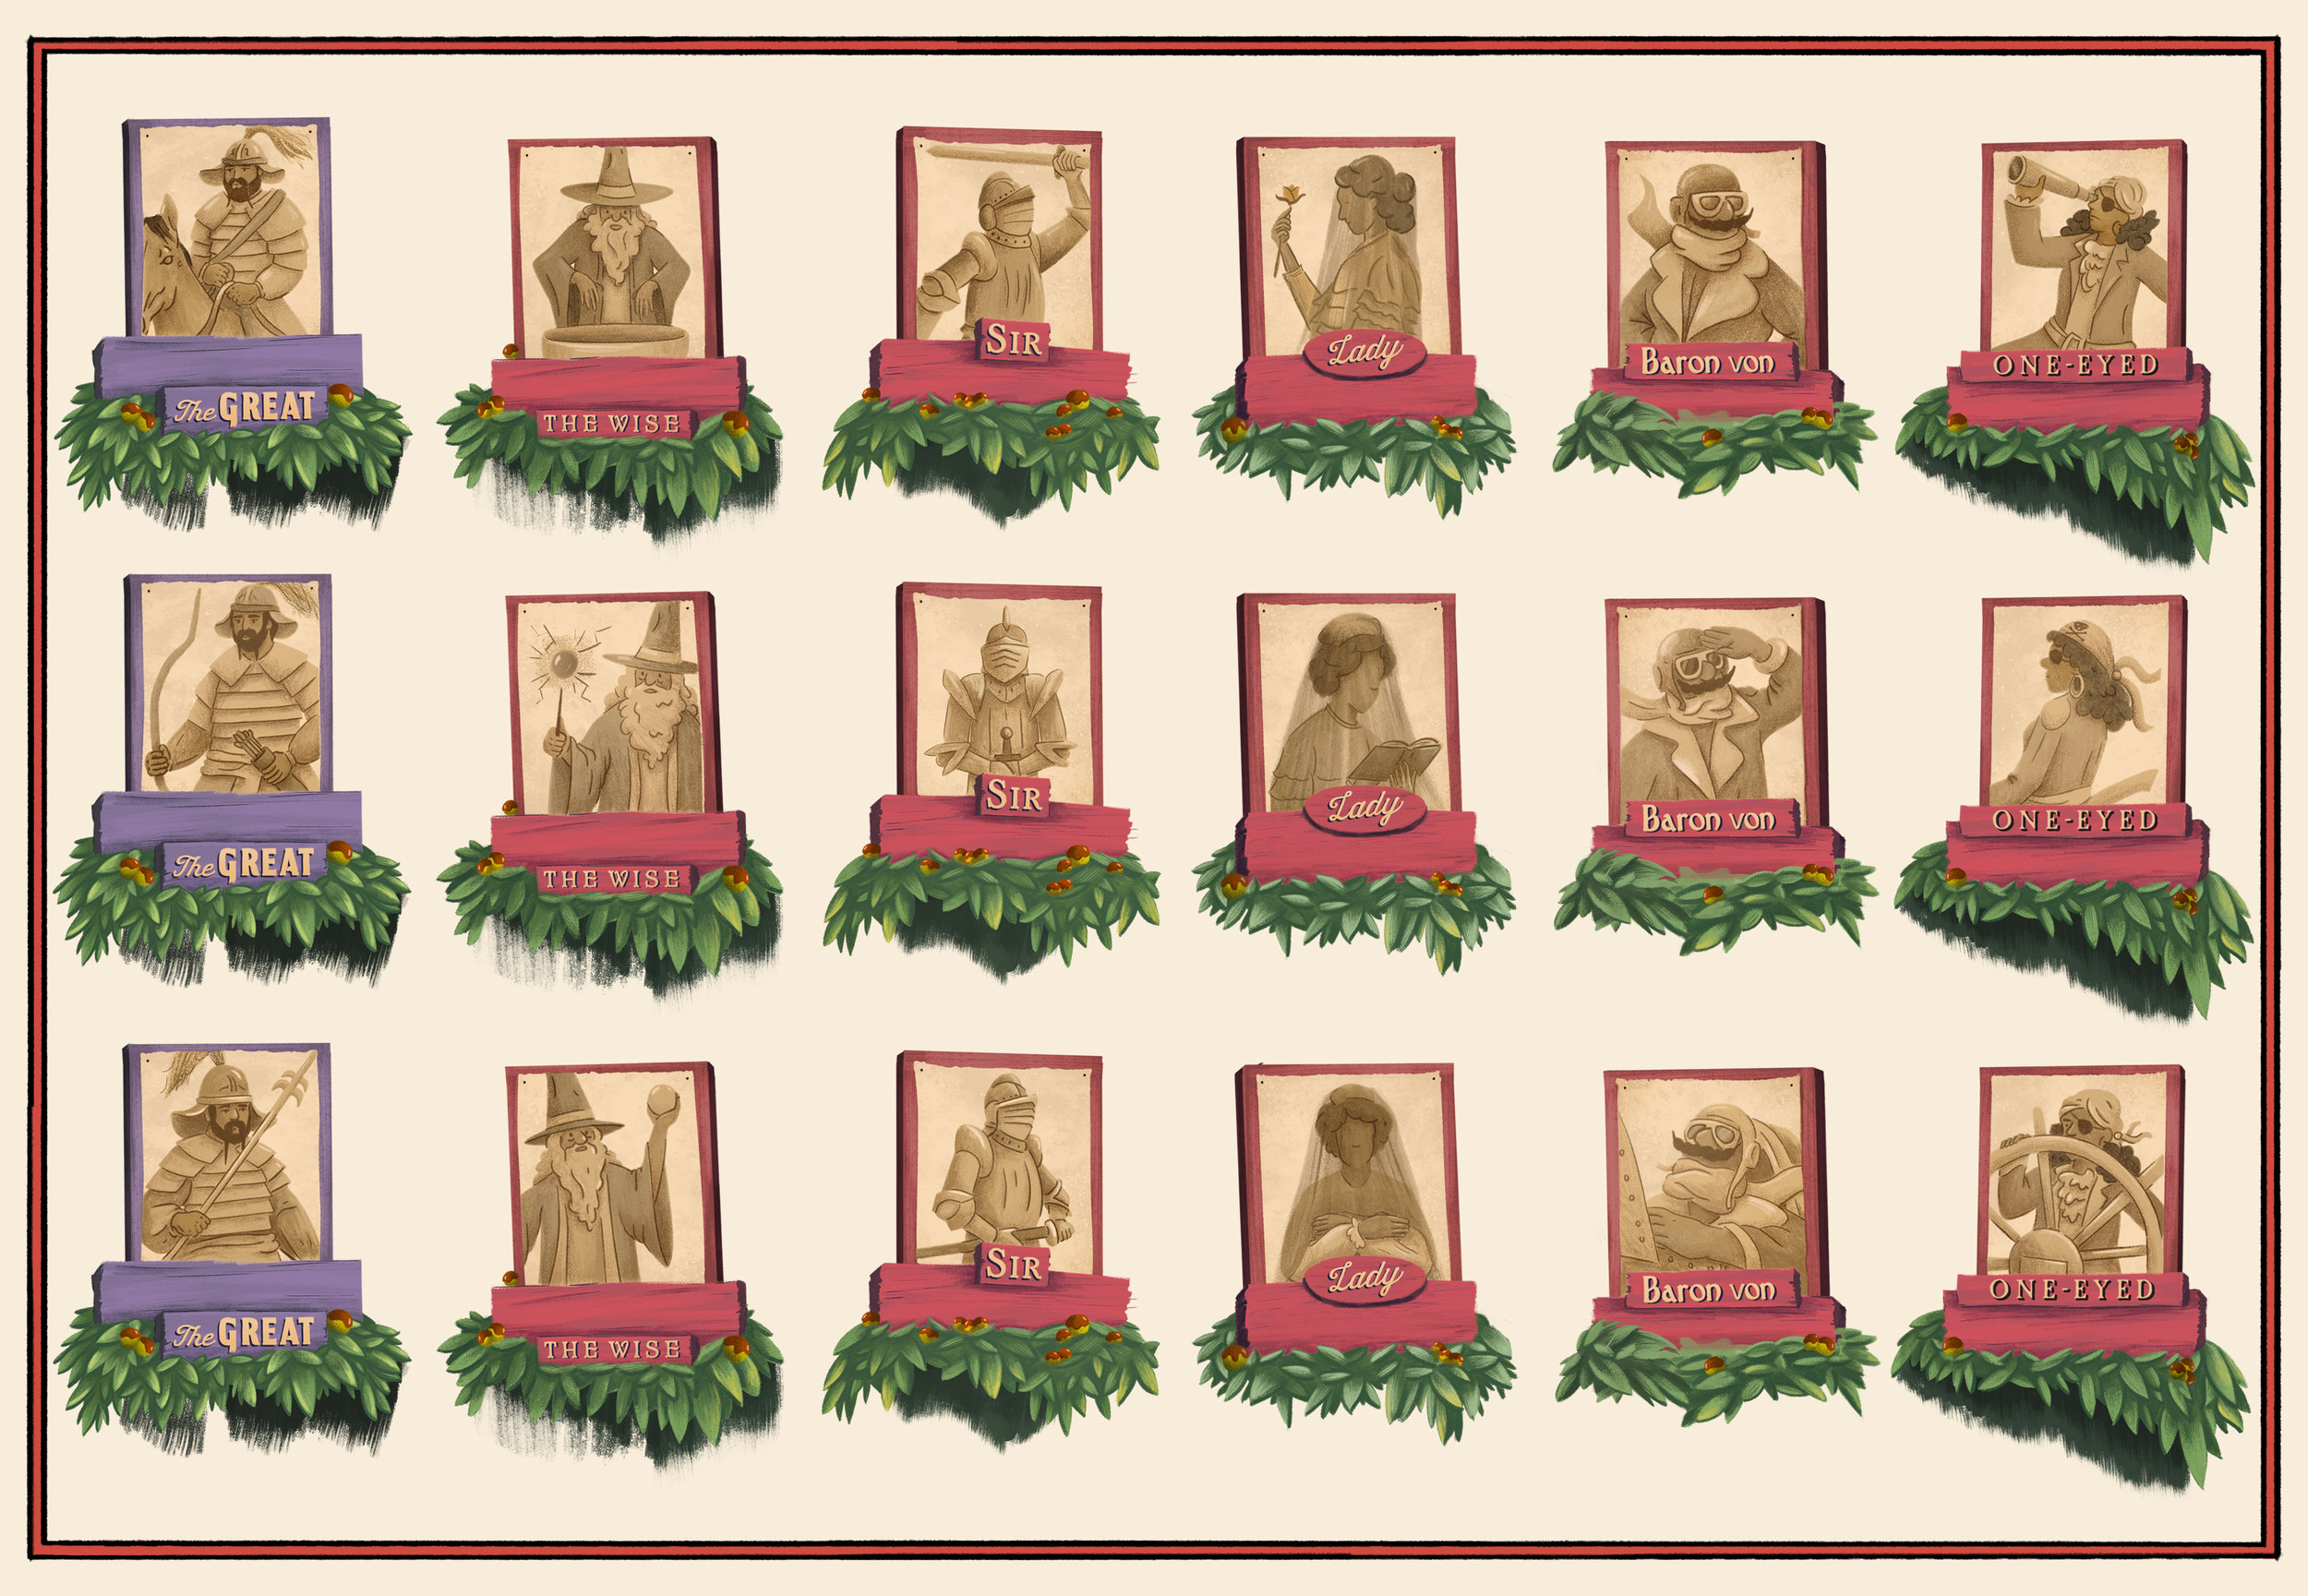 Character portraits for the Family Tree in the Toffee Apple Orchard